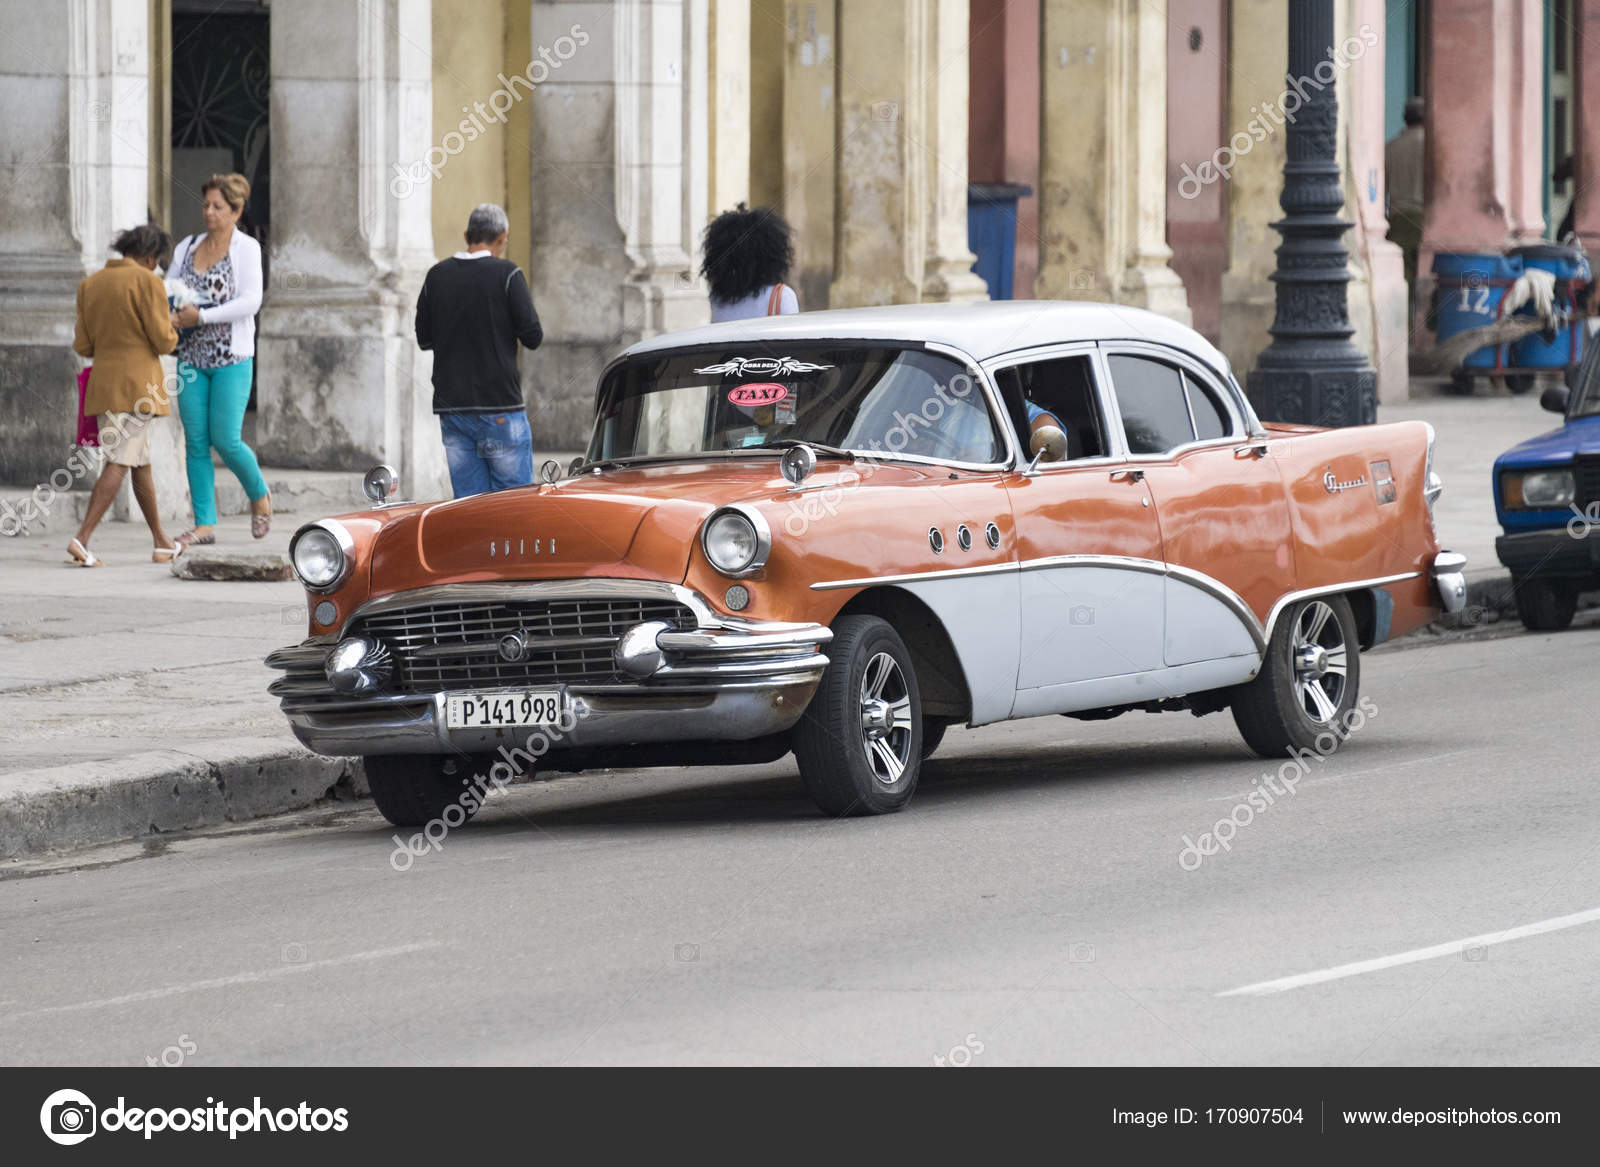 Pictures of Cuba: old vintage cars in action – Stock Editorial Photo ...